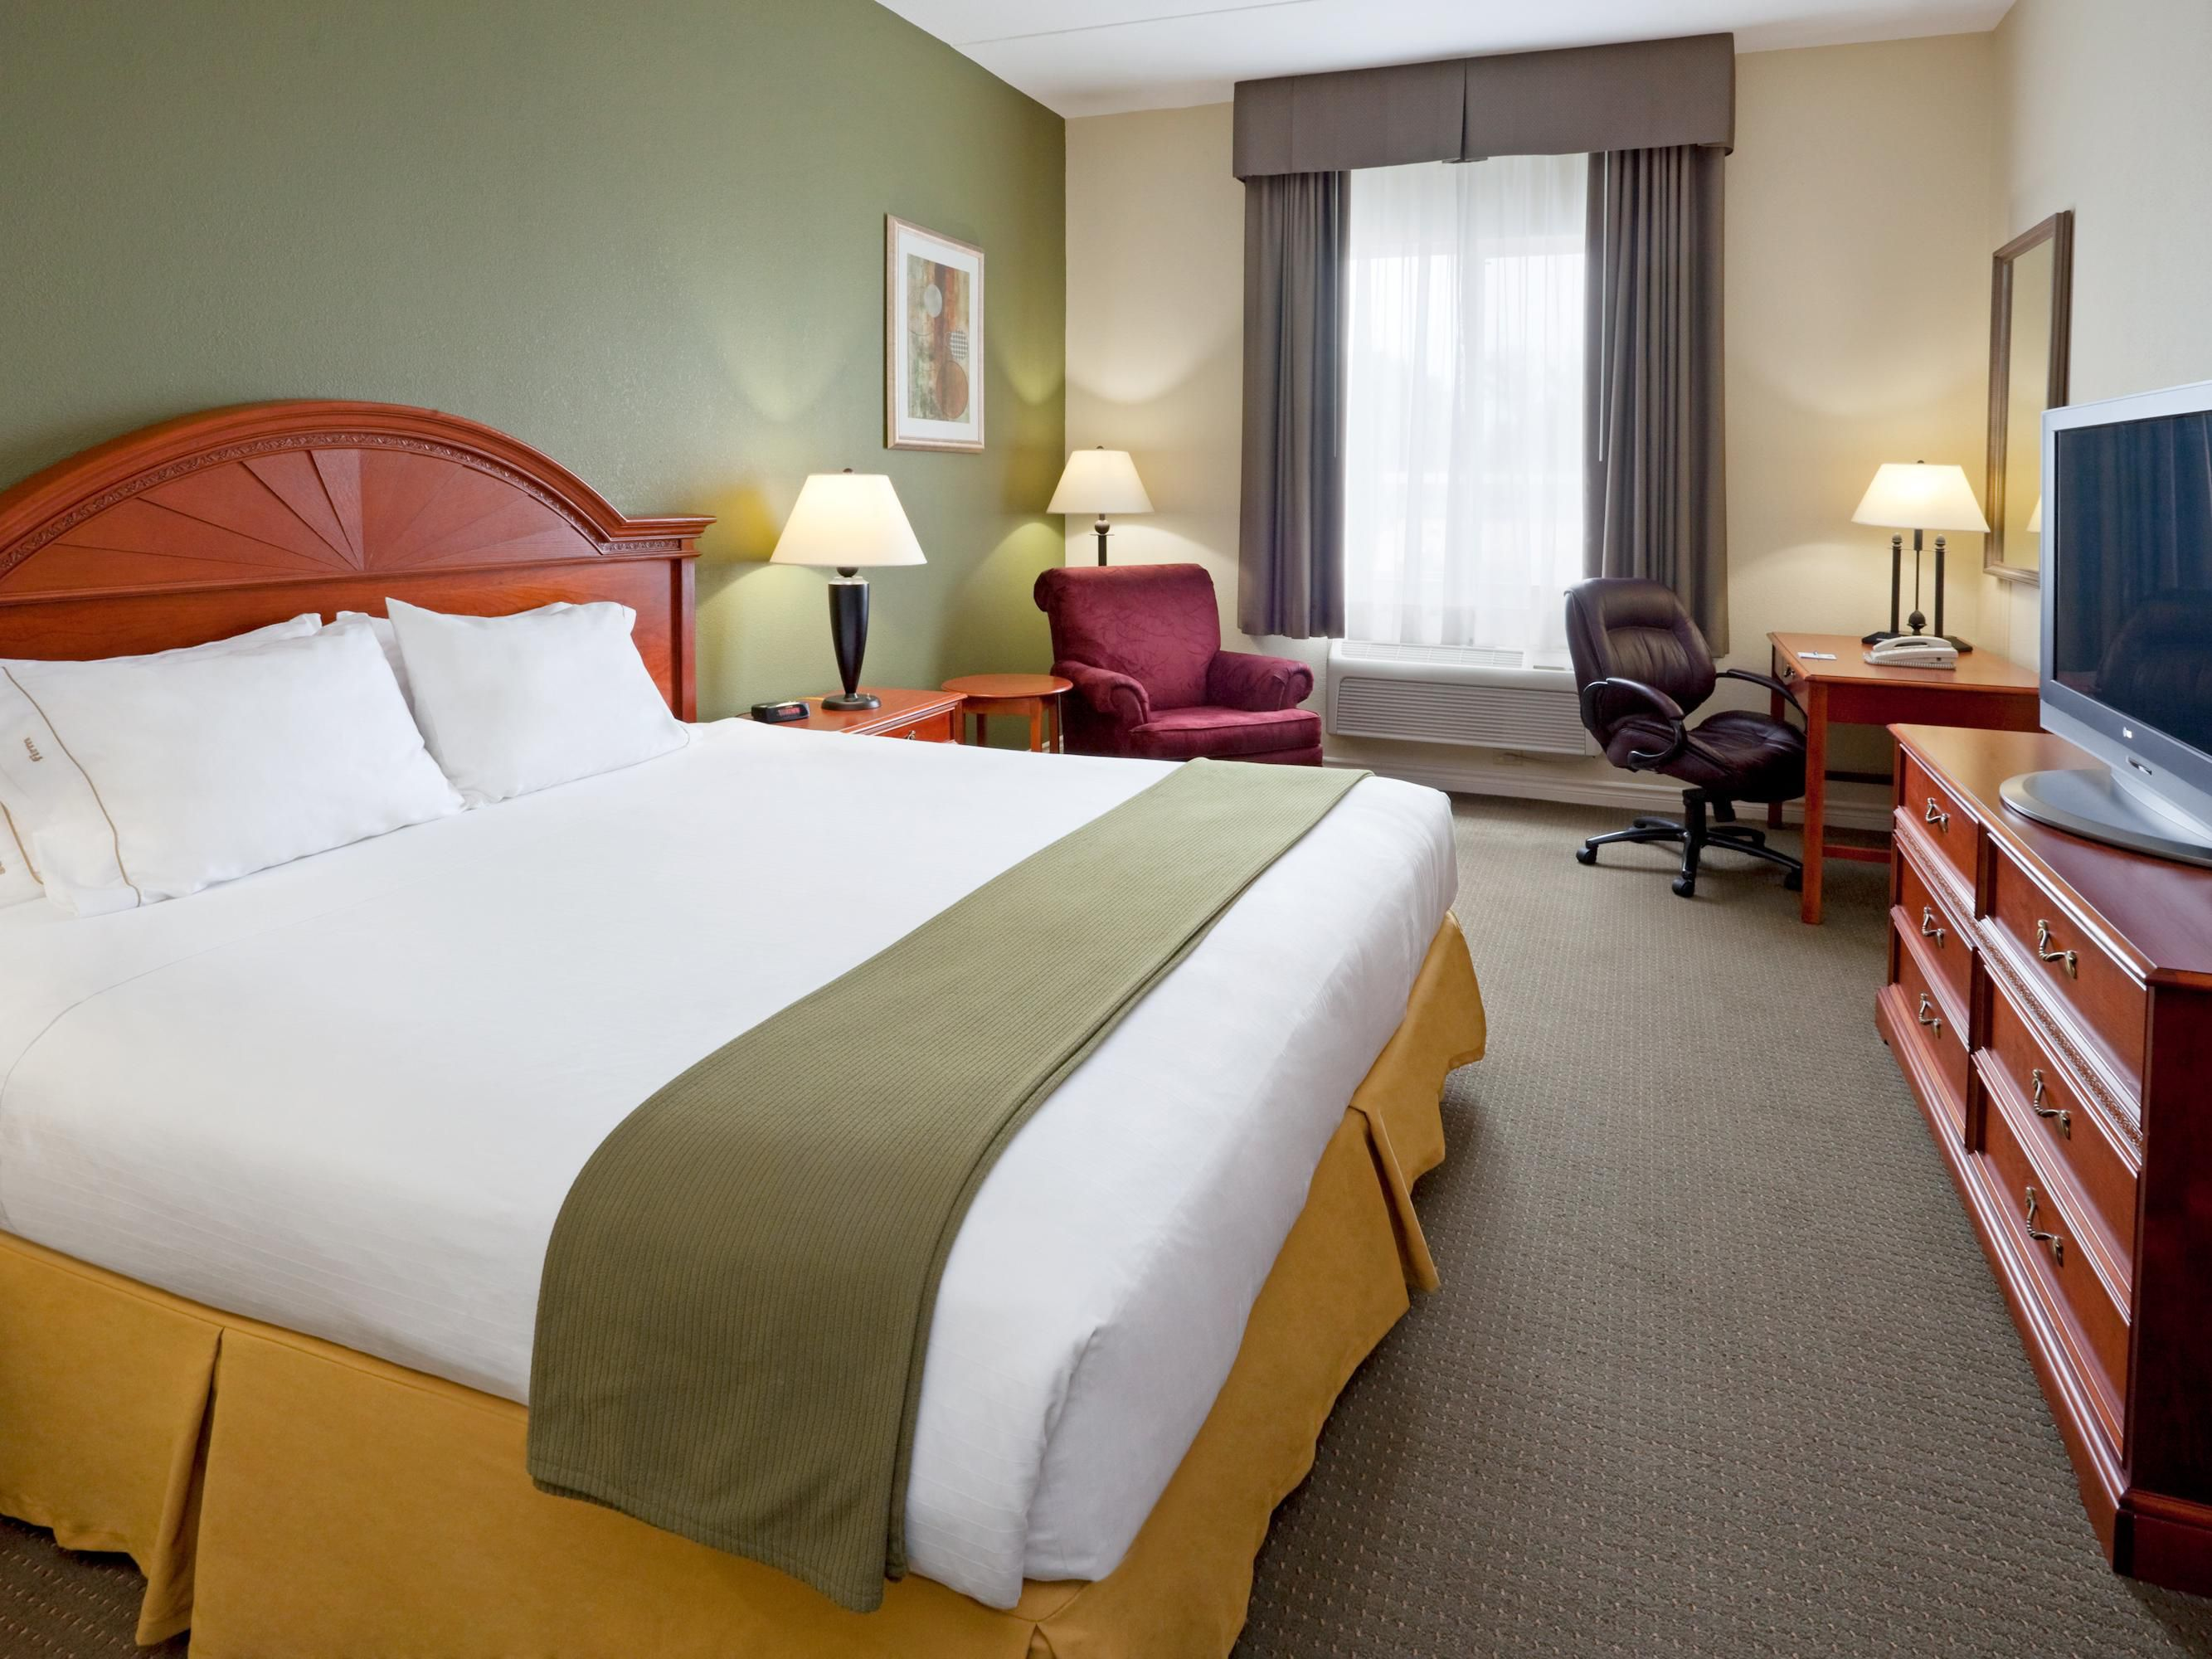 Executive King Room excellent for couples or business travellers.